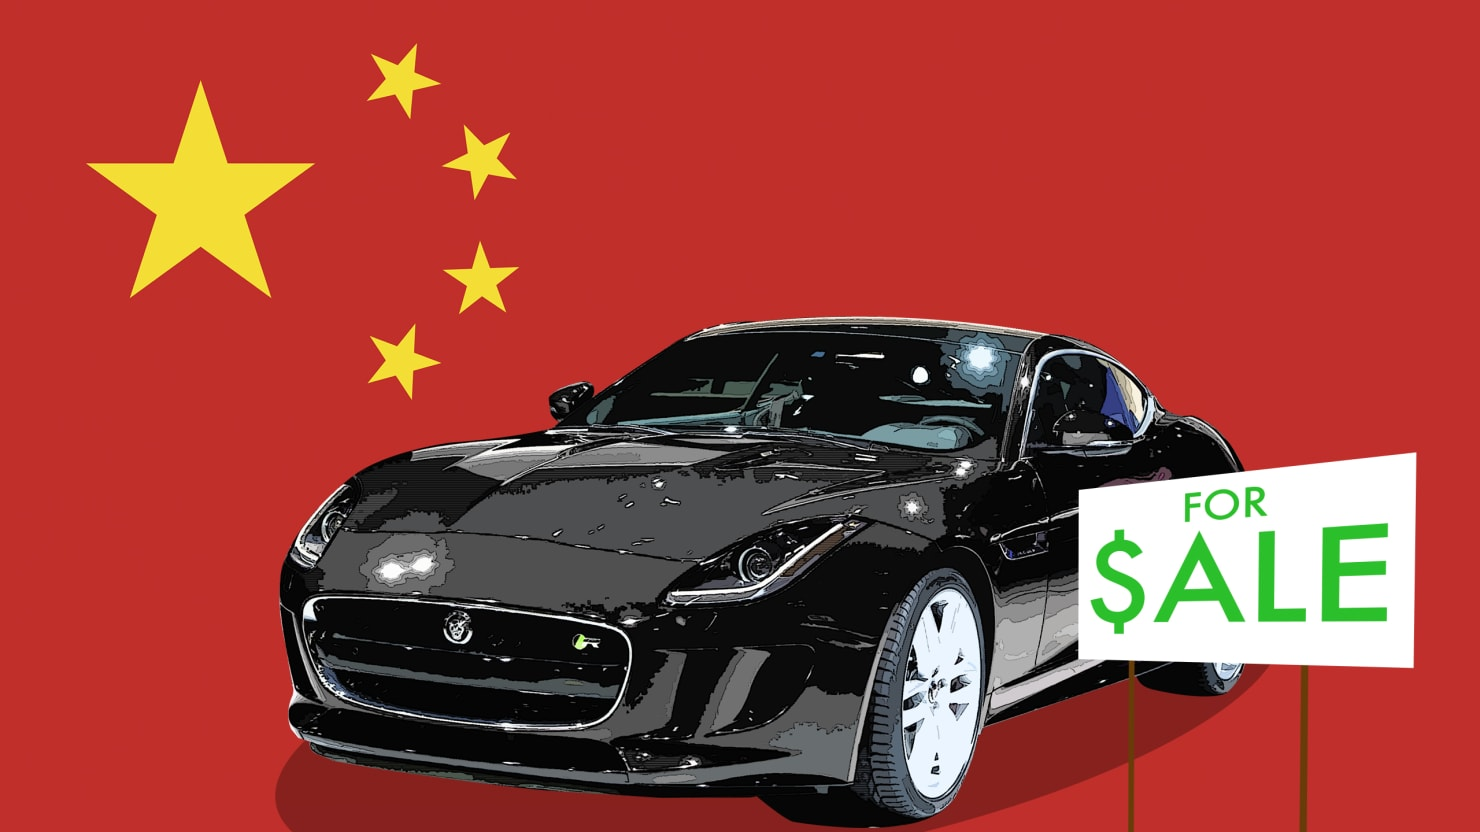 luxury car export scheme  The Lucrative, Barely Legal Business of Shipping Luxury Cars to China